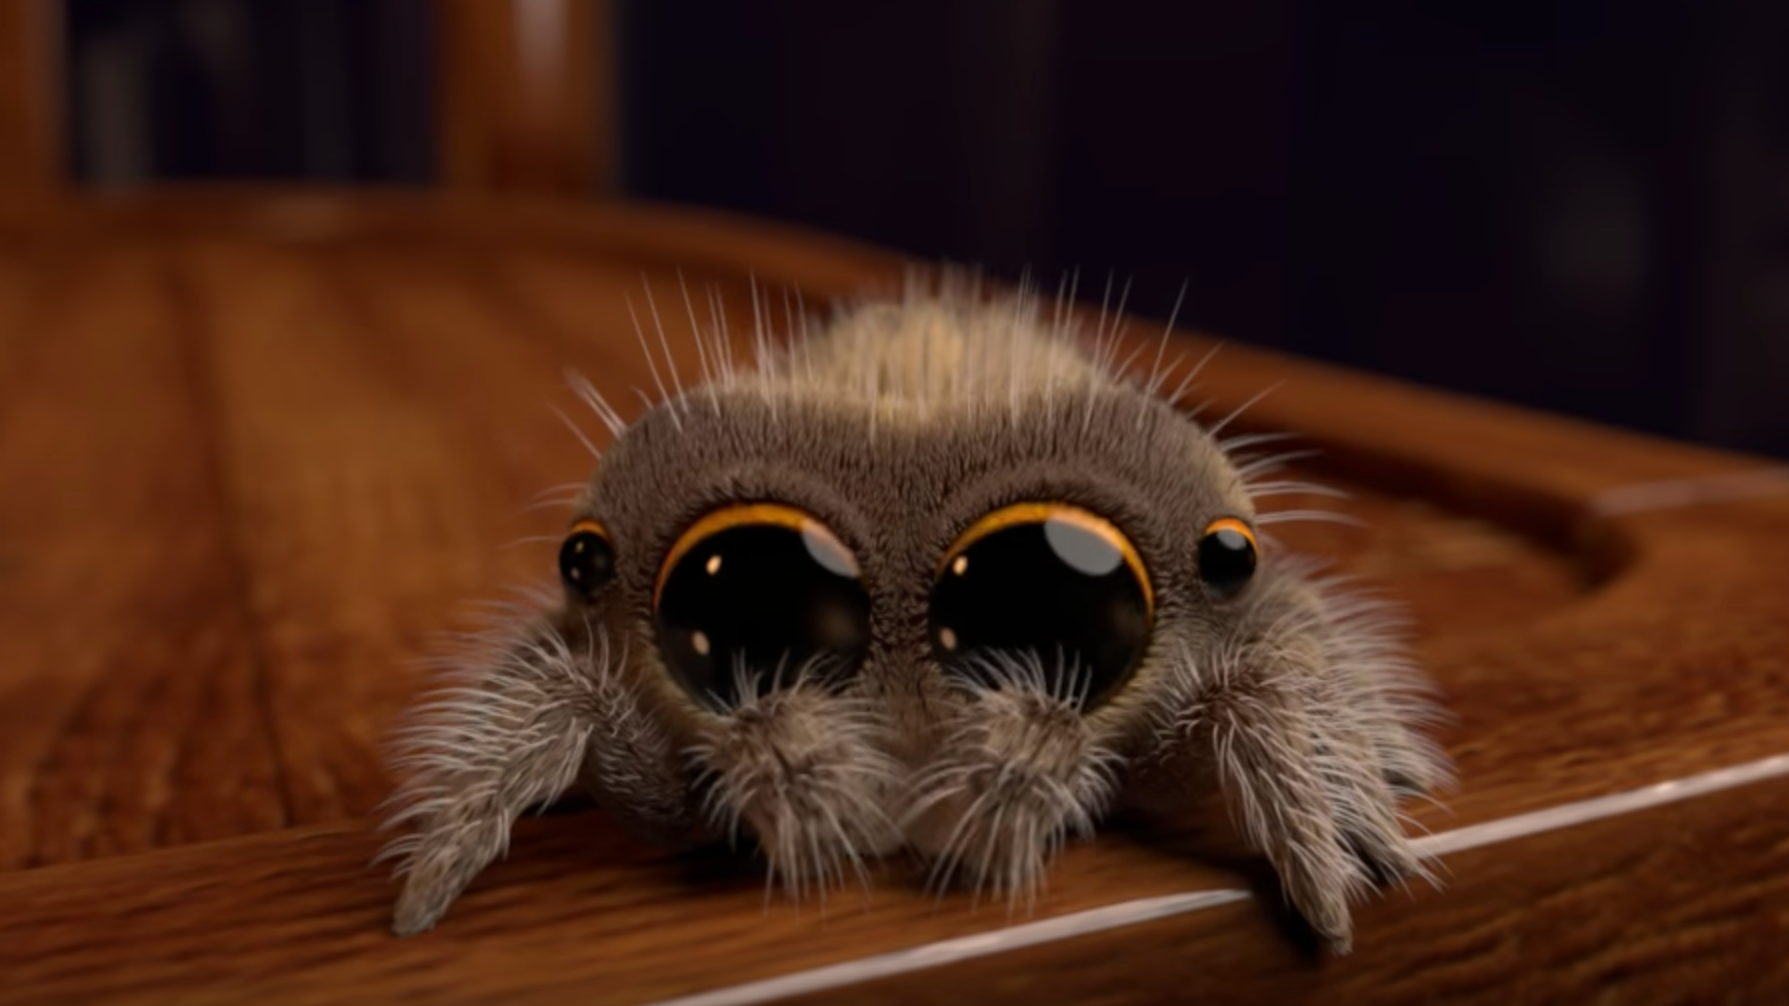 Hate Spiders? Prepare To Have Your Mind Changed